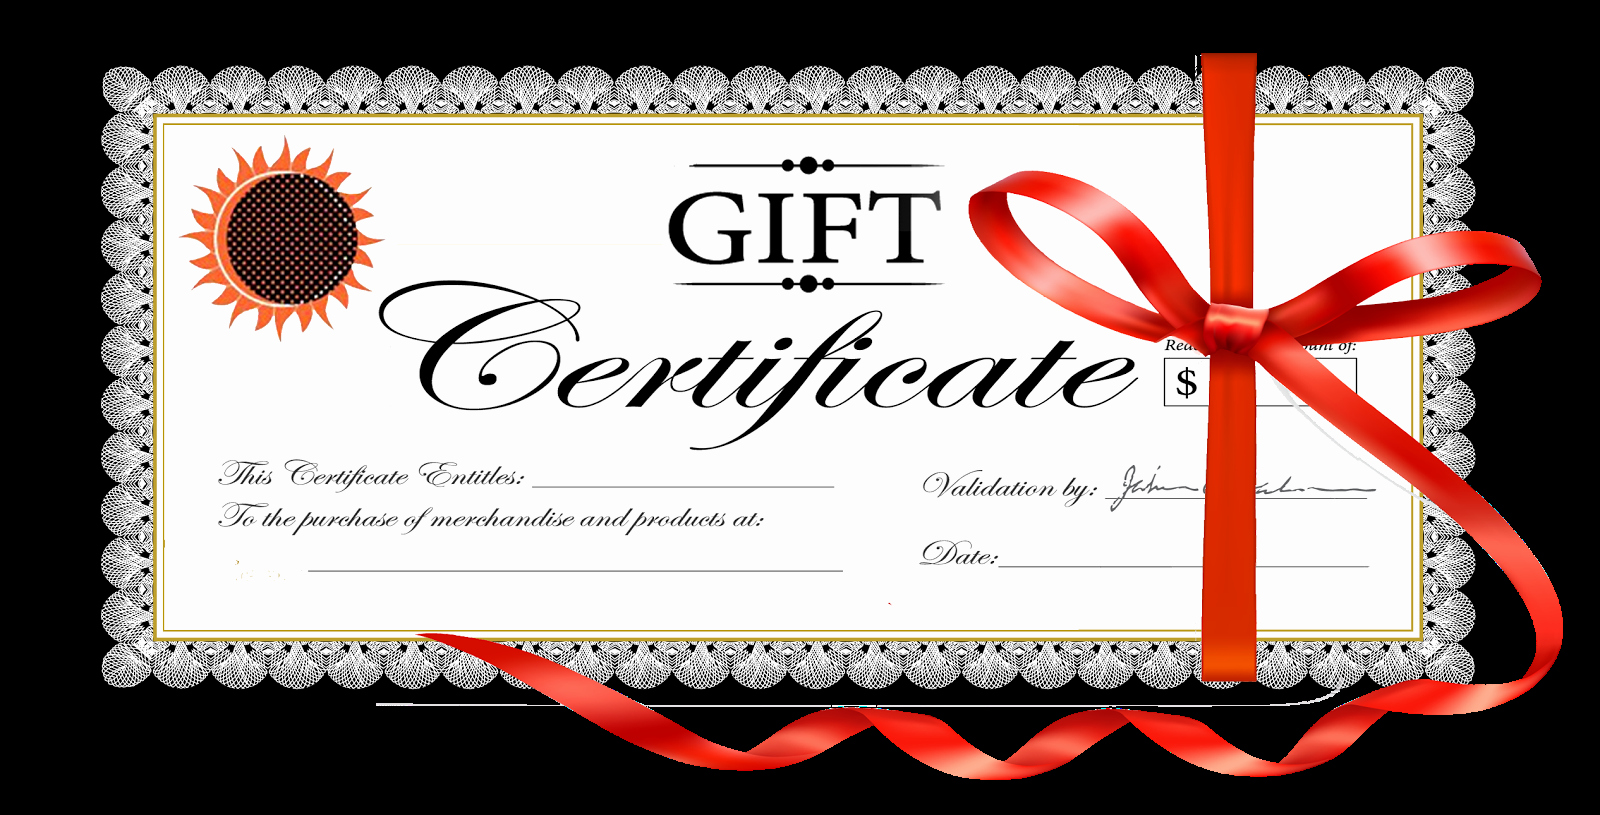 Gift Certificate Template Word Free Luxury 18 Gift Certificate Templates Excel Pdf formats